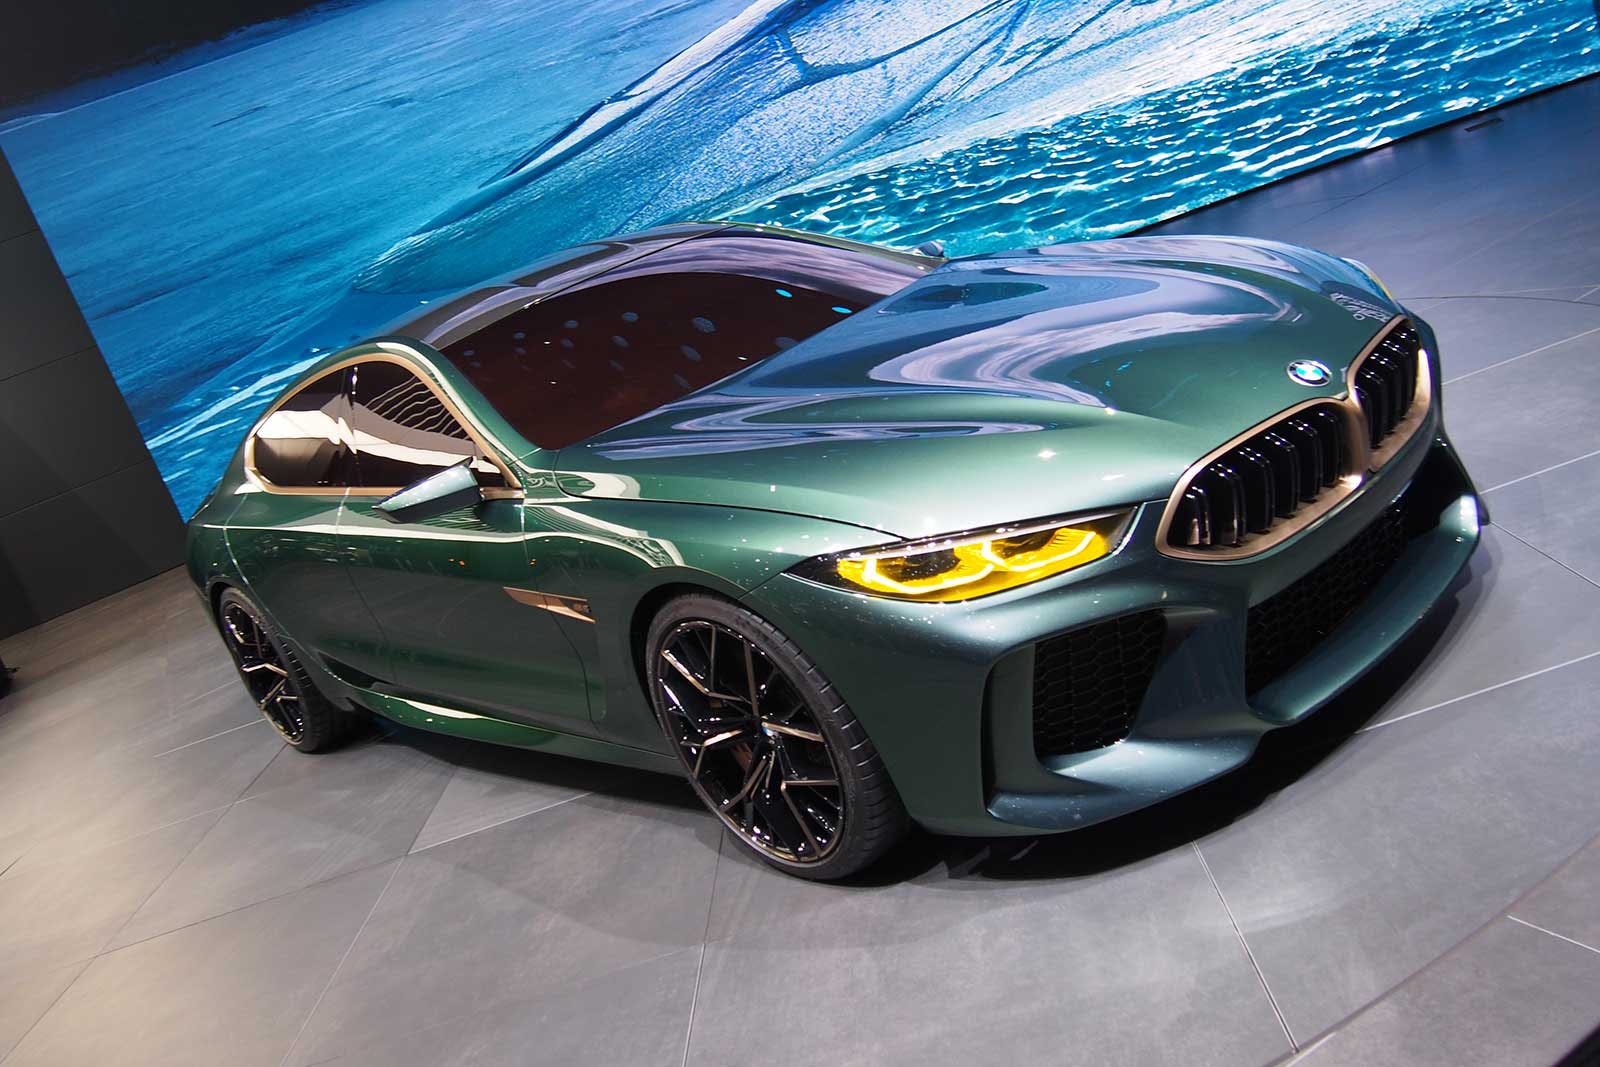 bmw concept m8 gran coupe a low and mean greenish gray flagship machine news. Black Bedroom Furniture Sets. Home Design Ideas